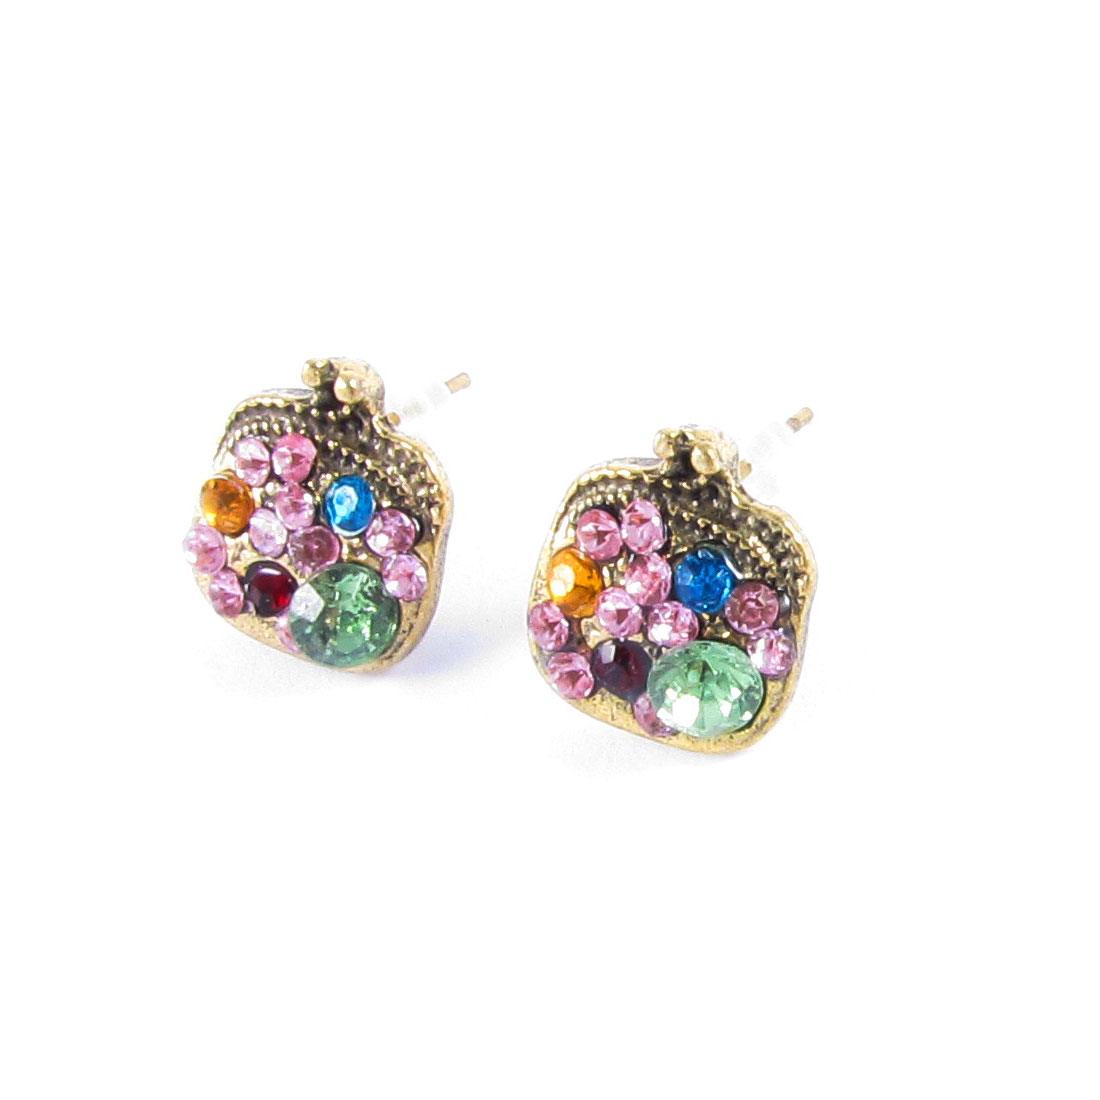 Girls Ear Ornament Rhinestones Bronze Tone Mini Bag Design Stud Earrings Pair